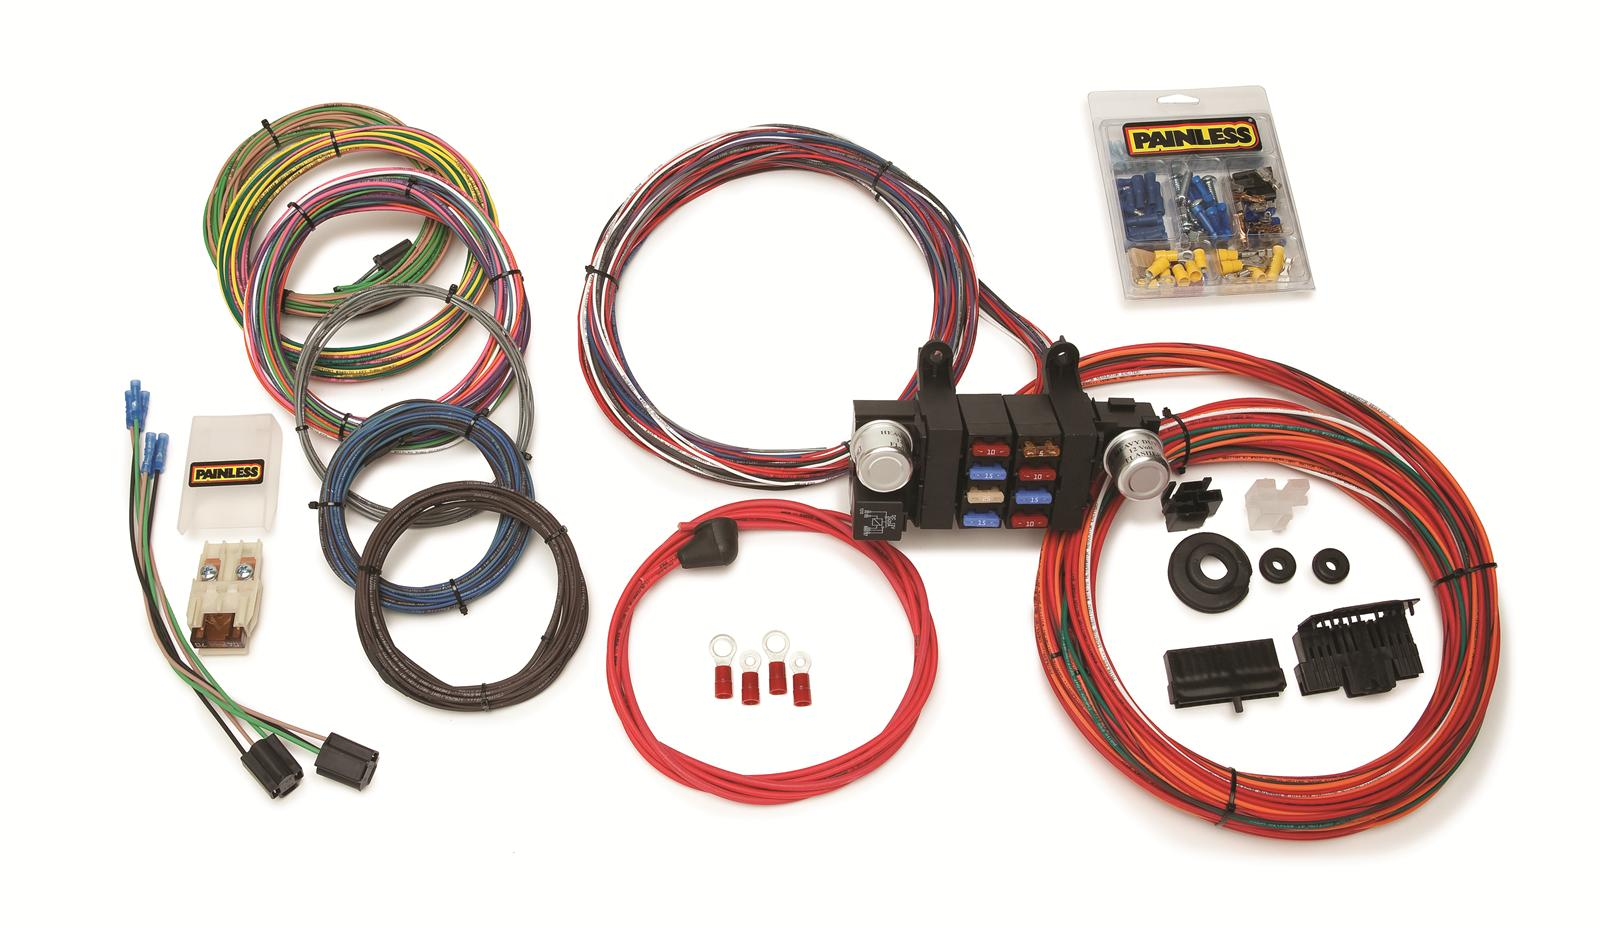 Painless Performance 18-Circuit Modular Chis Harnesses 10308 on